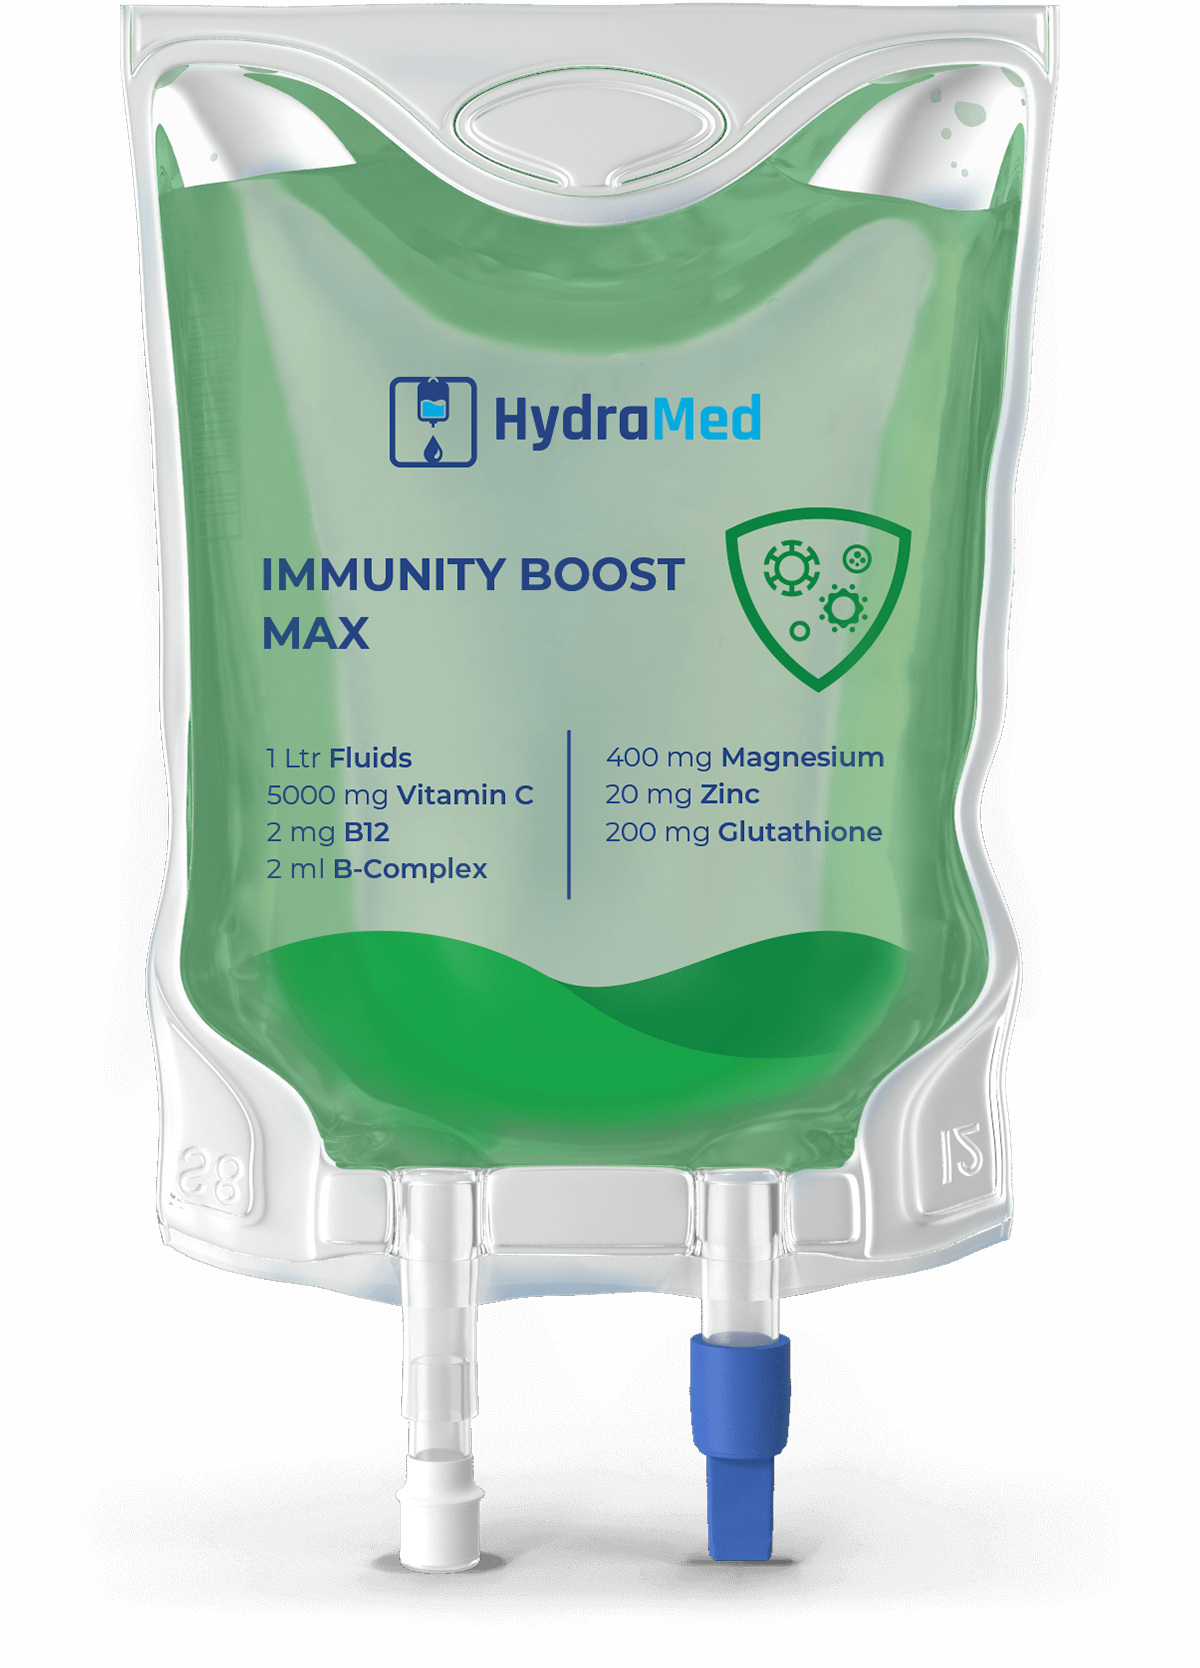 Immunity Boost Max IV Therapy